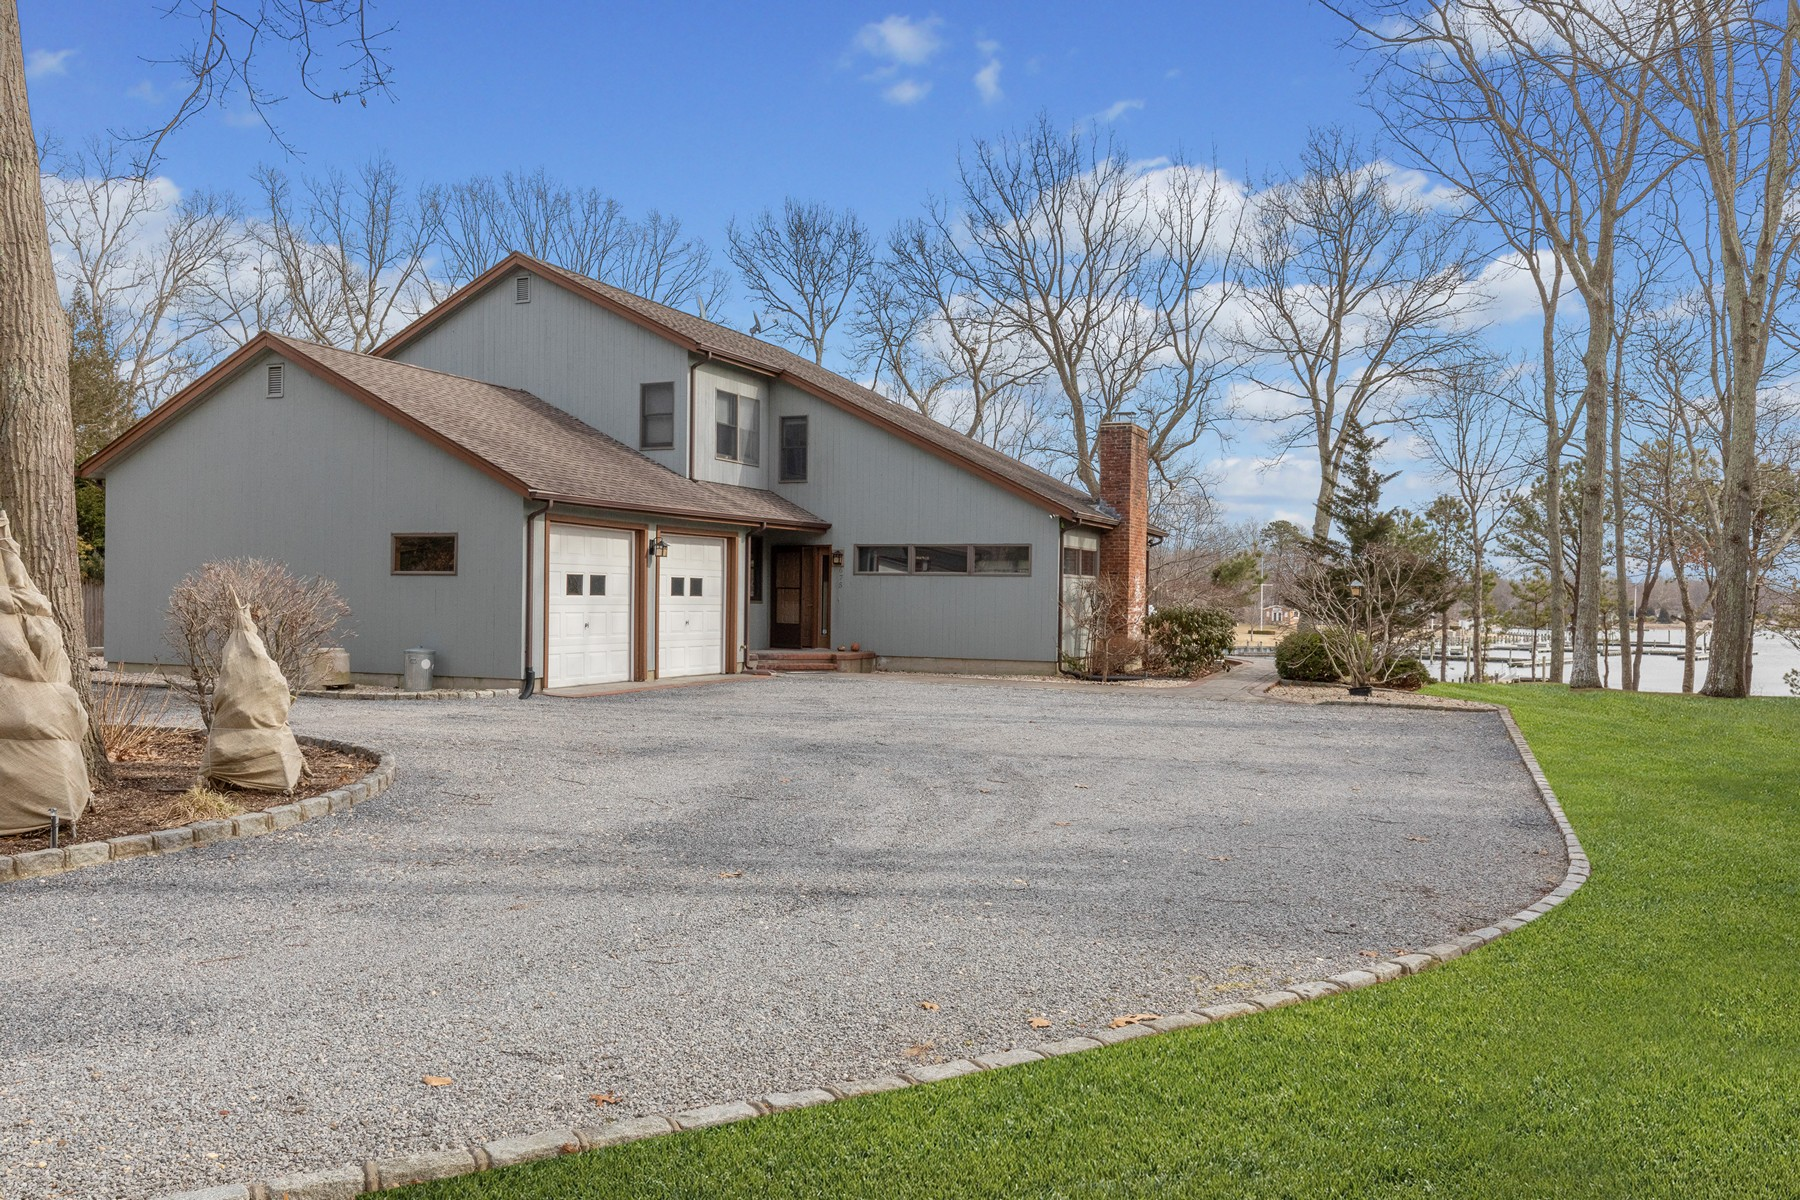 Single Family Homes for Active at Mattituck 675 Westview Dr Mattituck, New York 11952 United States